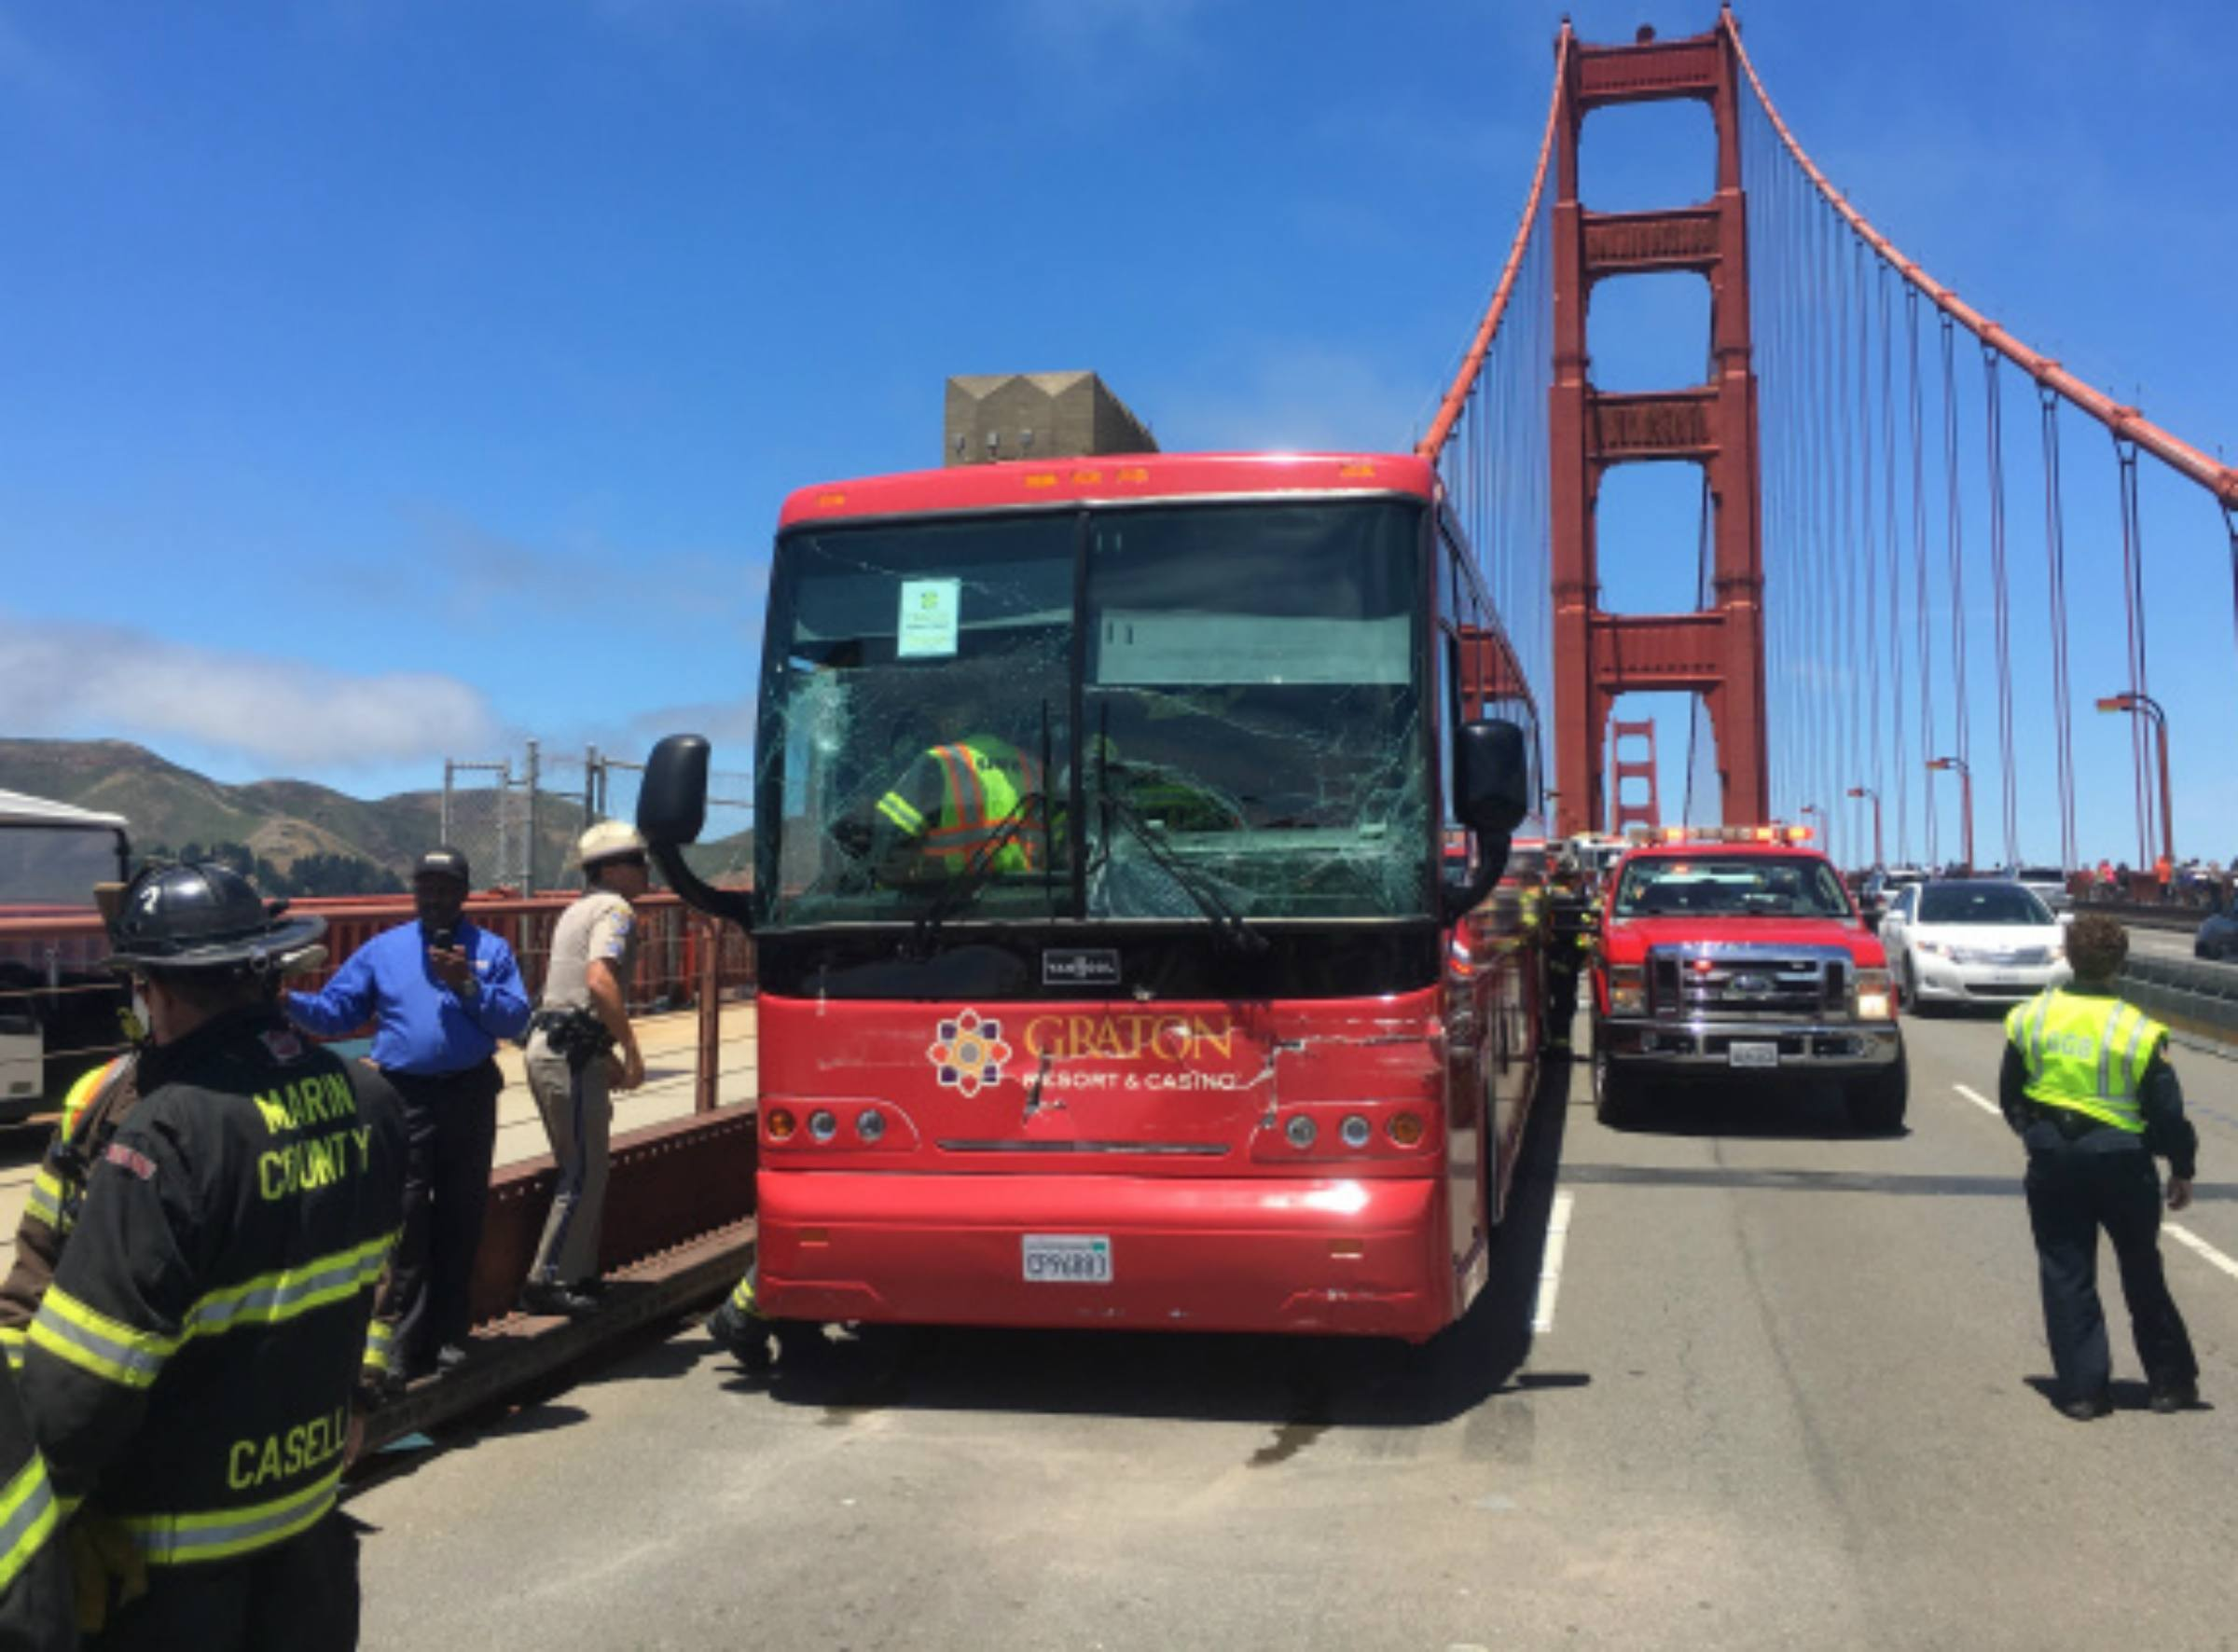 casino bus DUI Graton California